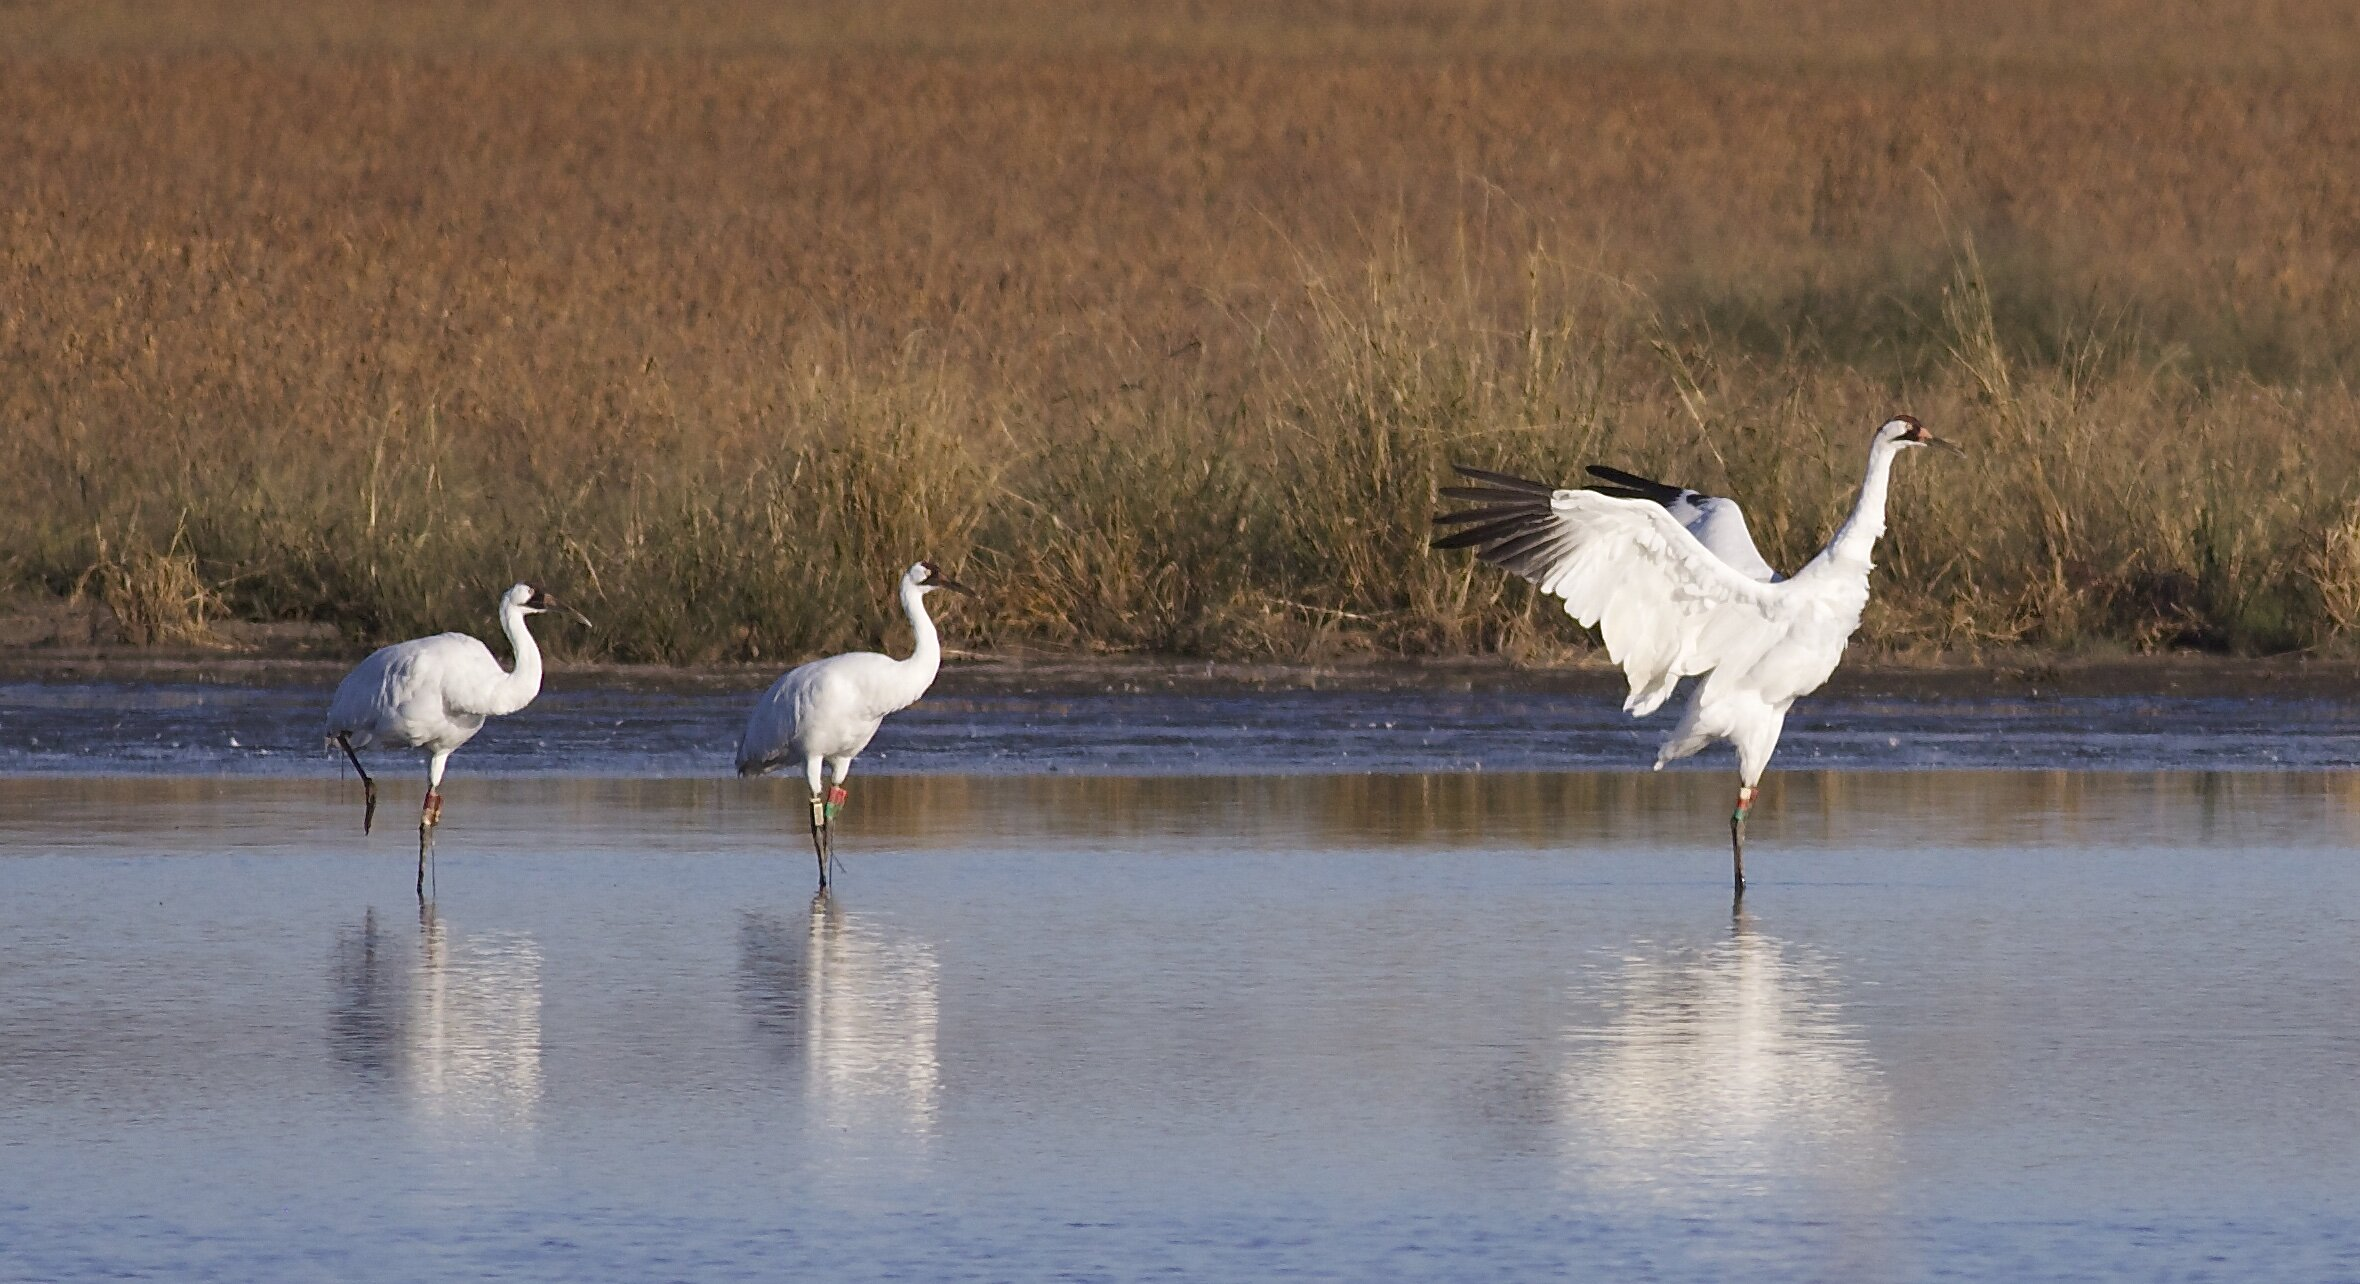 Three whooping cranes stand in the shallows. Photo by Arlene Koziol, taken in 2014